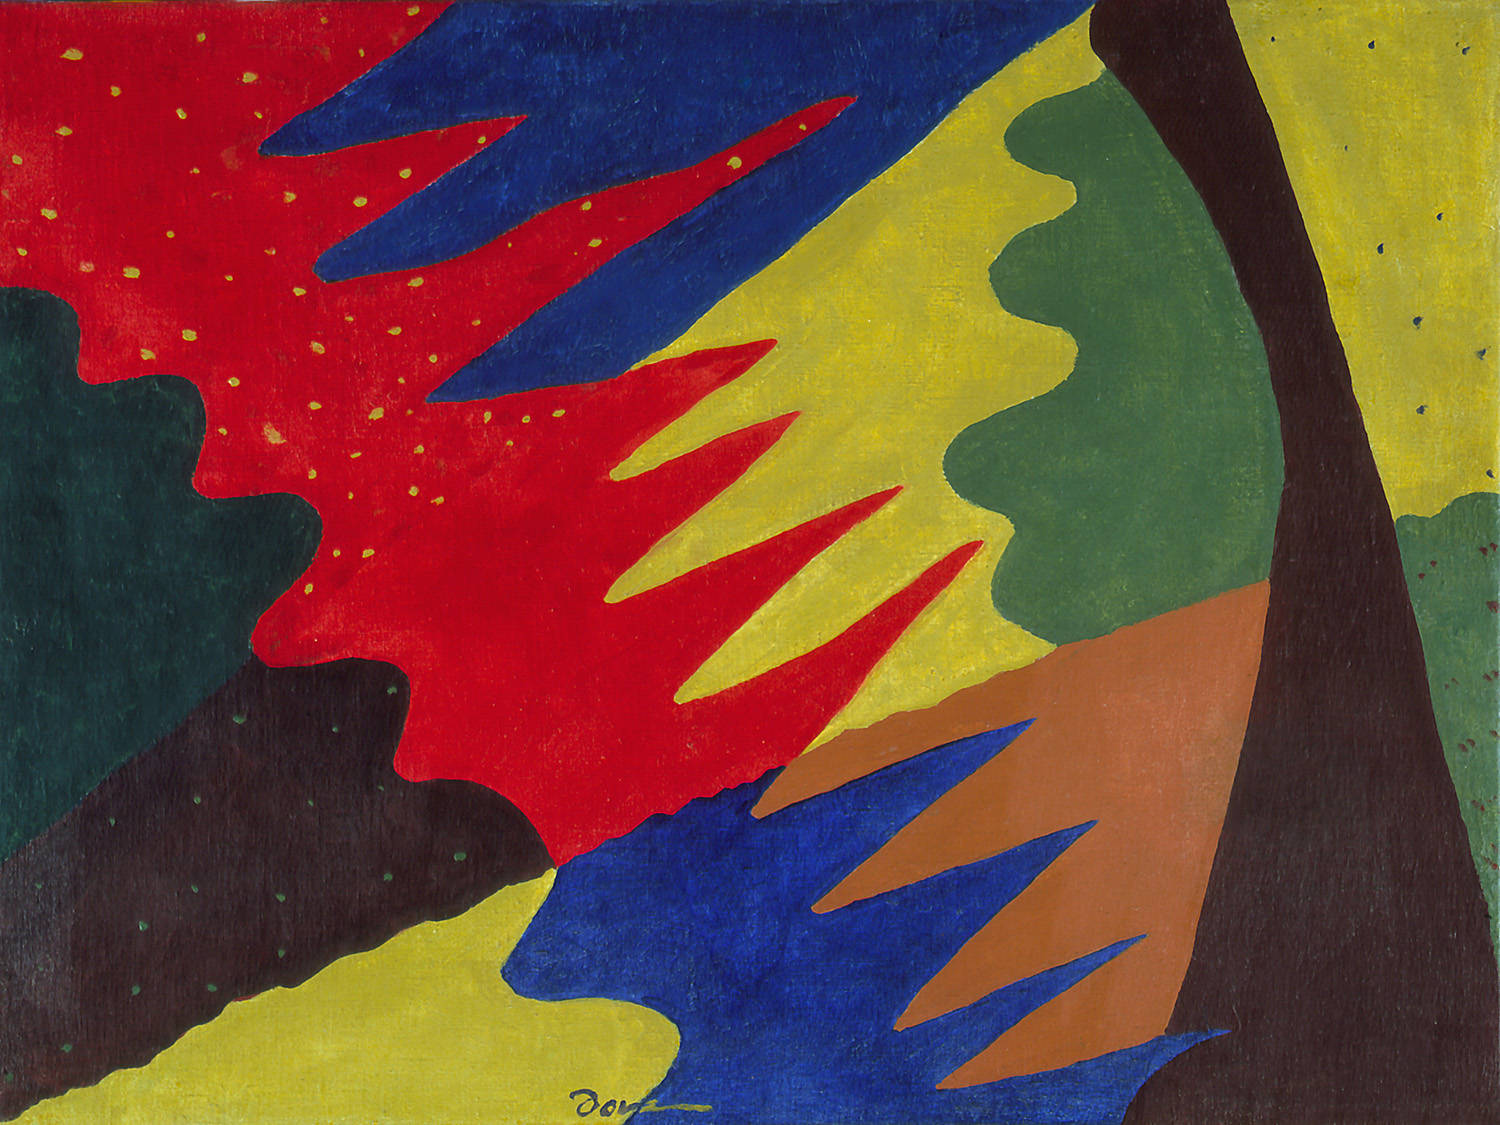 Arthur Dove - Space Divided